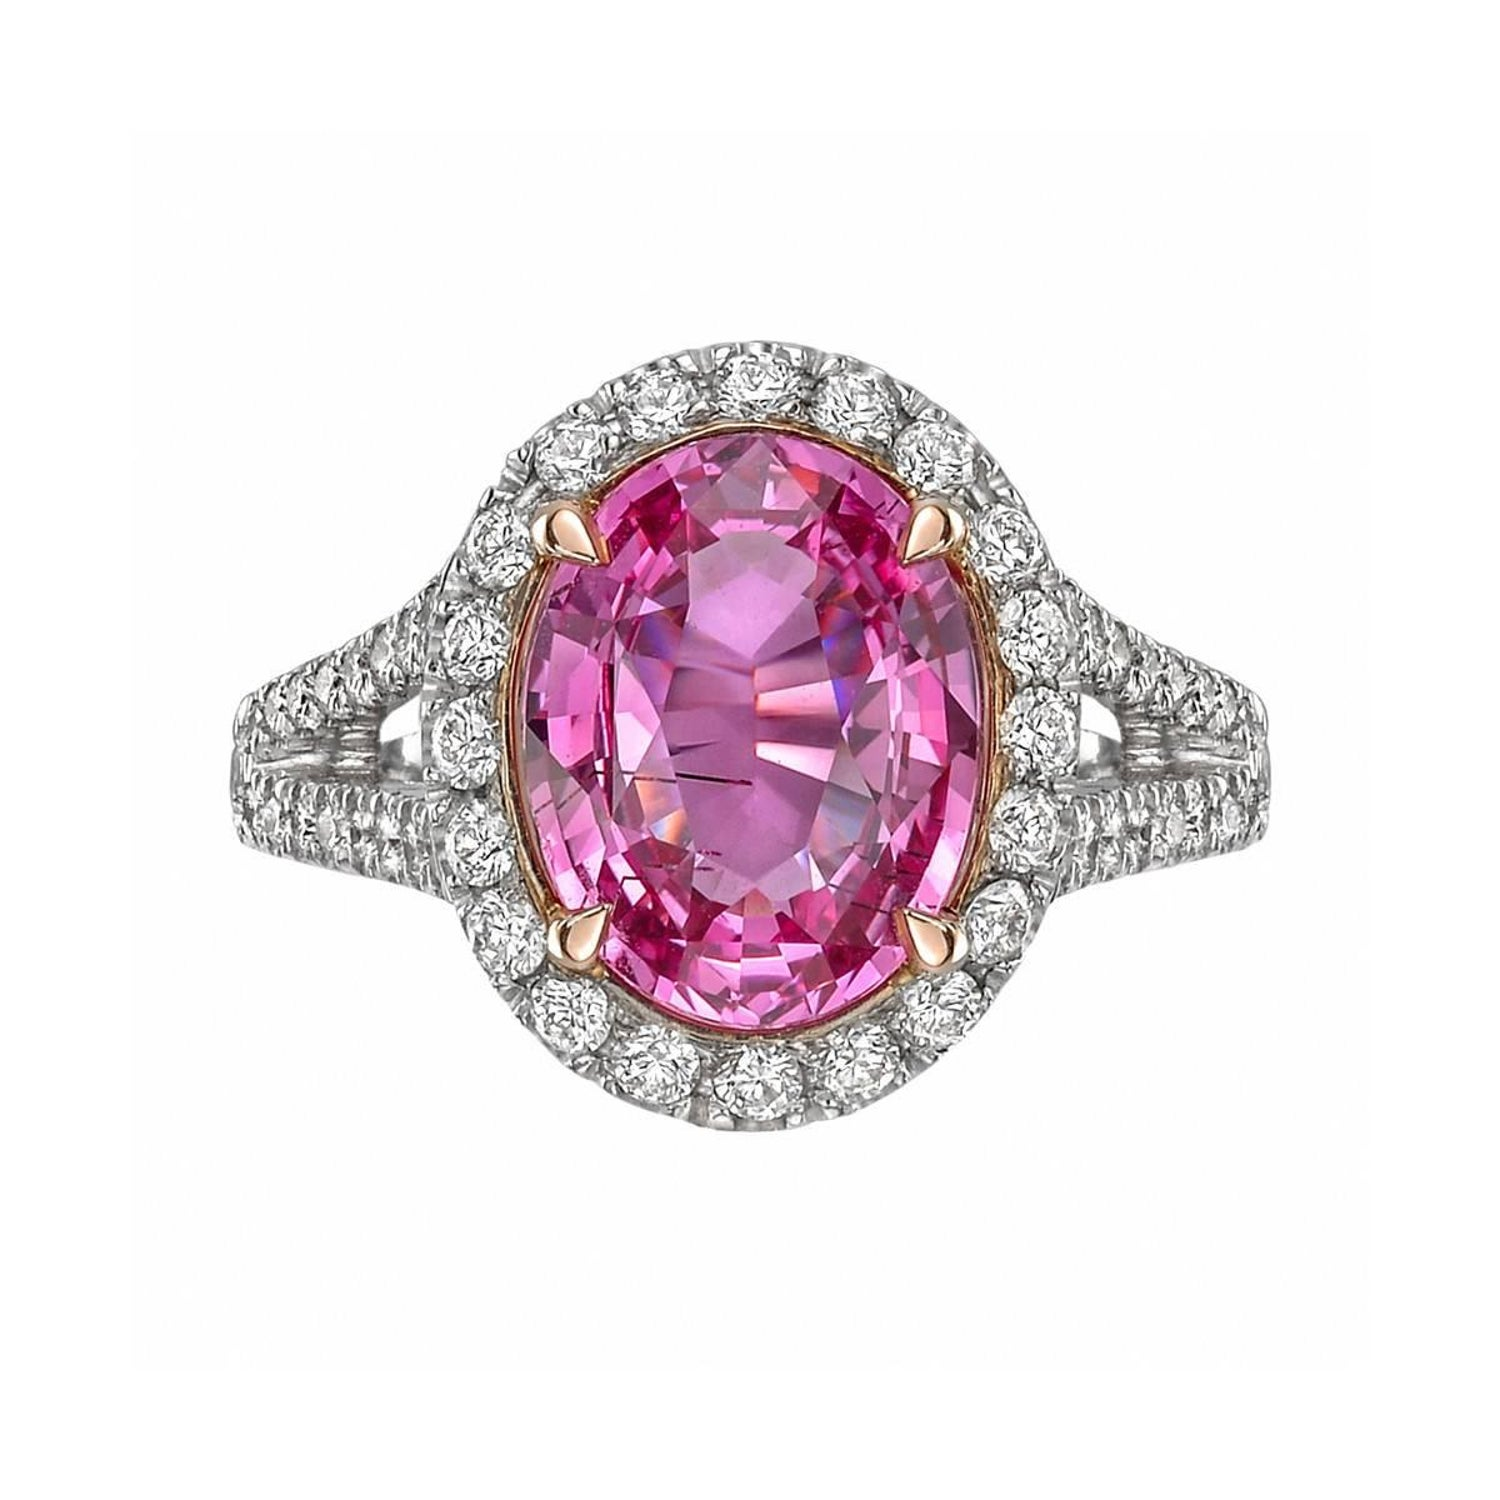 3.81 Carat Pink Sapphire and Diamond Ring For Sale at 1stdibs